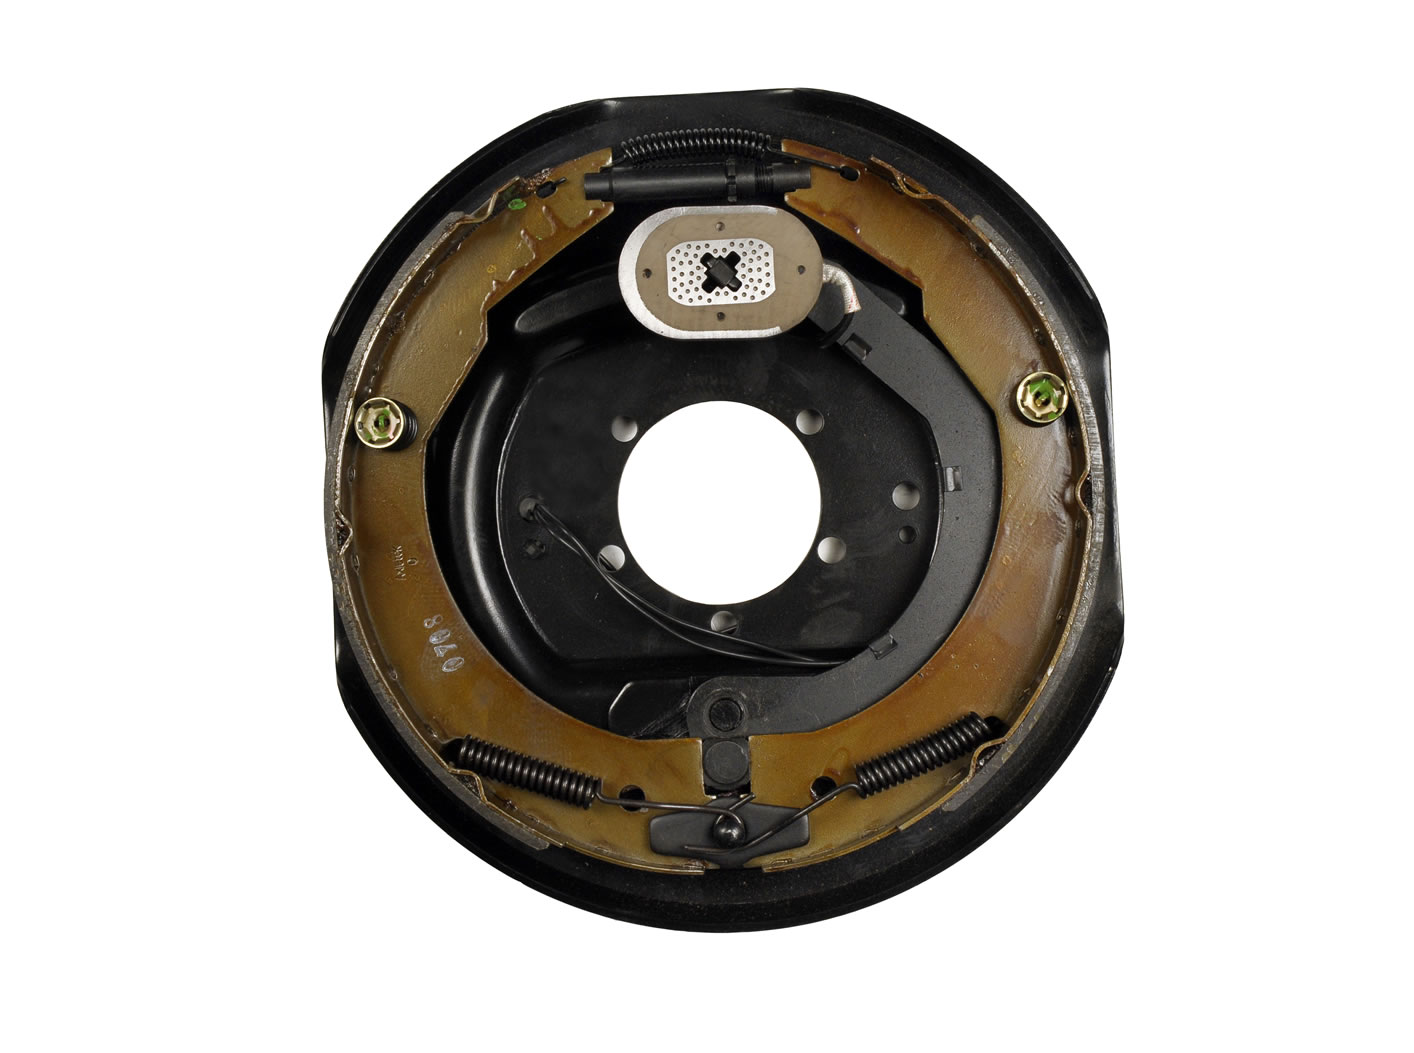 014-122259 AP Products Trailer Brake Assembly Fits 4000 Pound To 7000